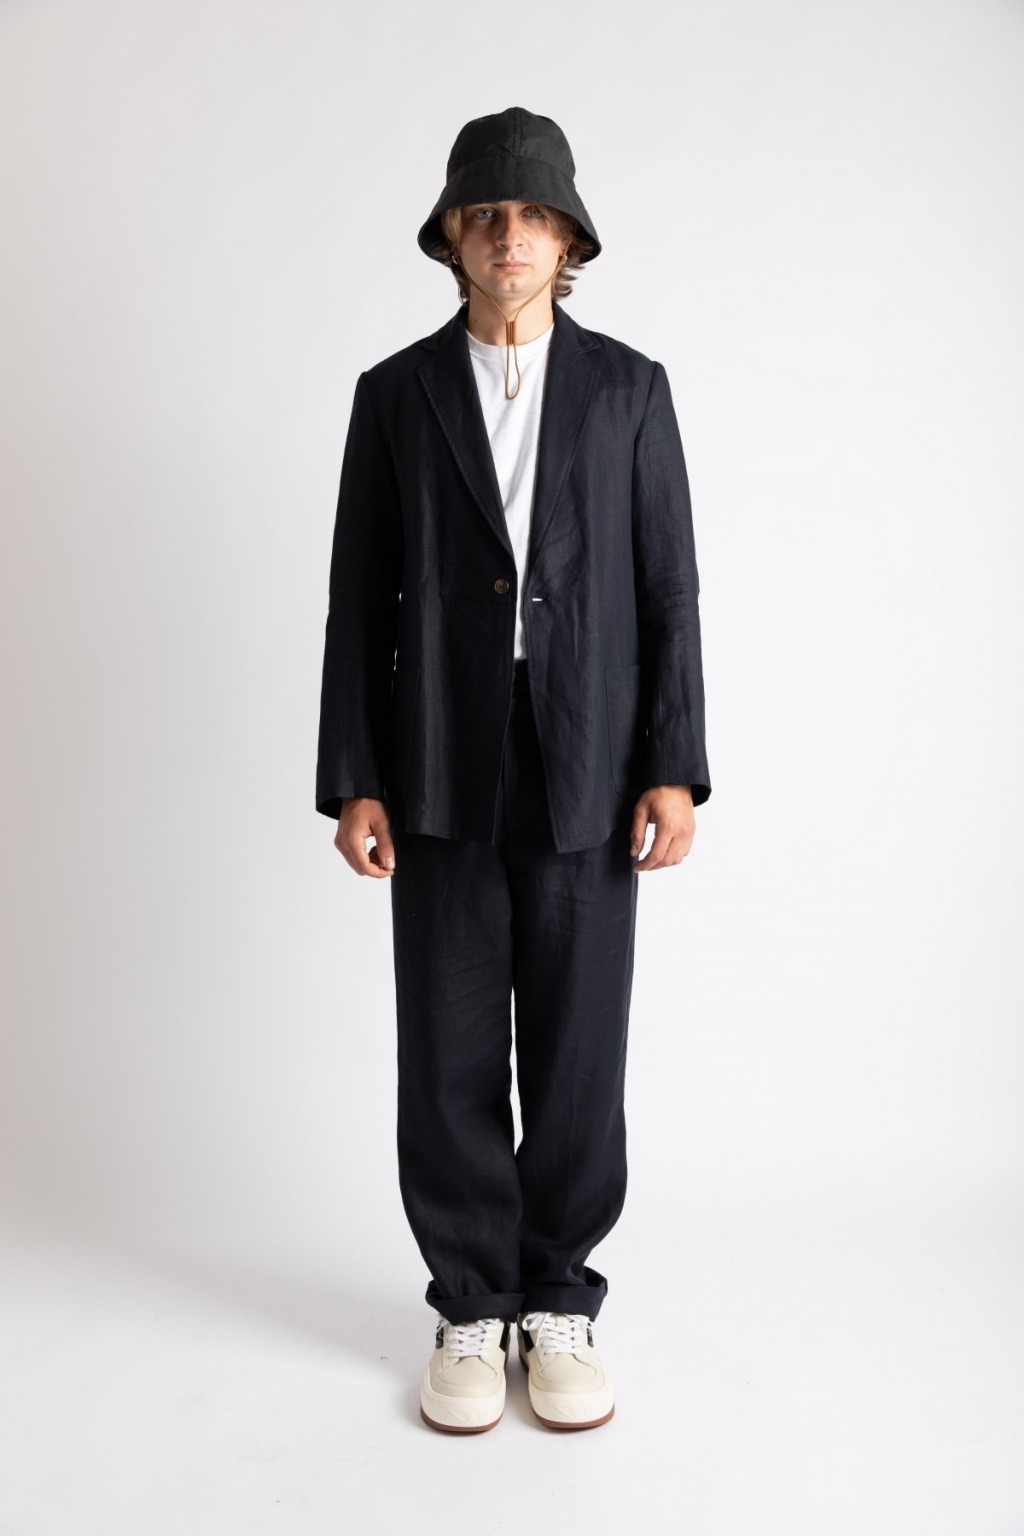 société Anonyme ss20 mens collection David pants + Glory Jacket